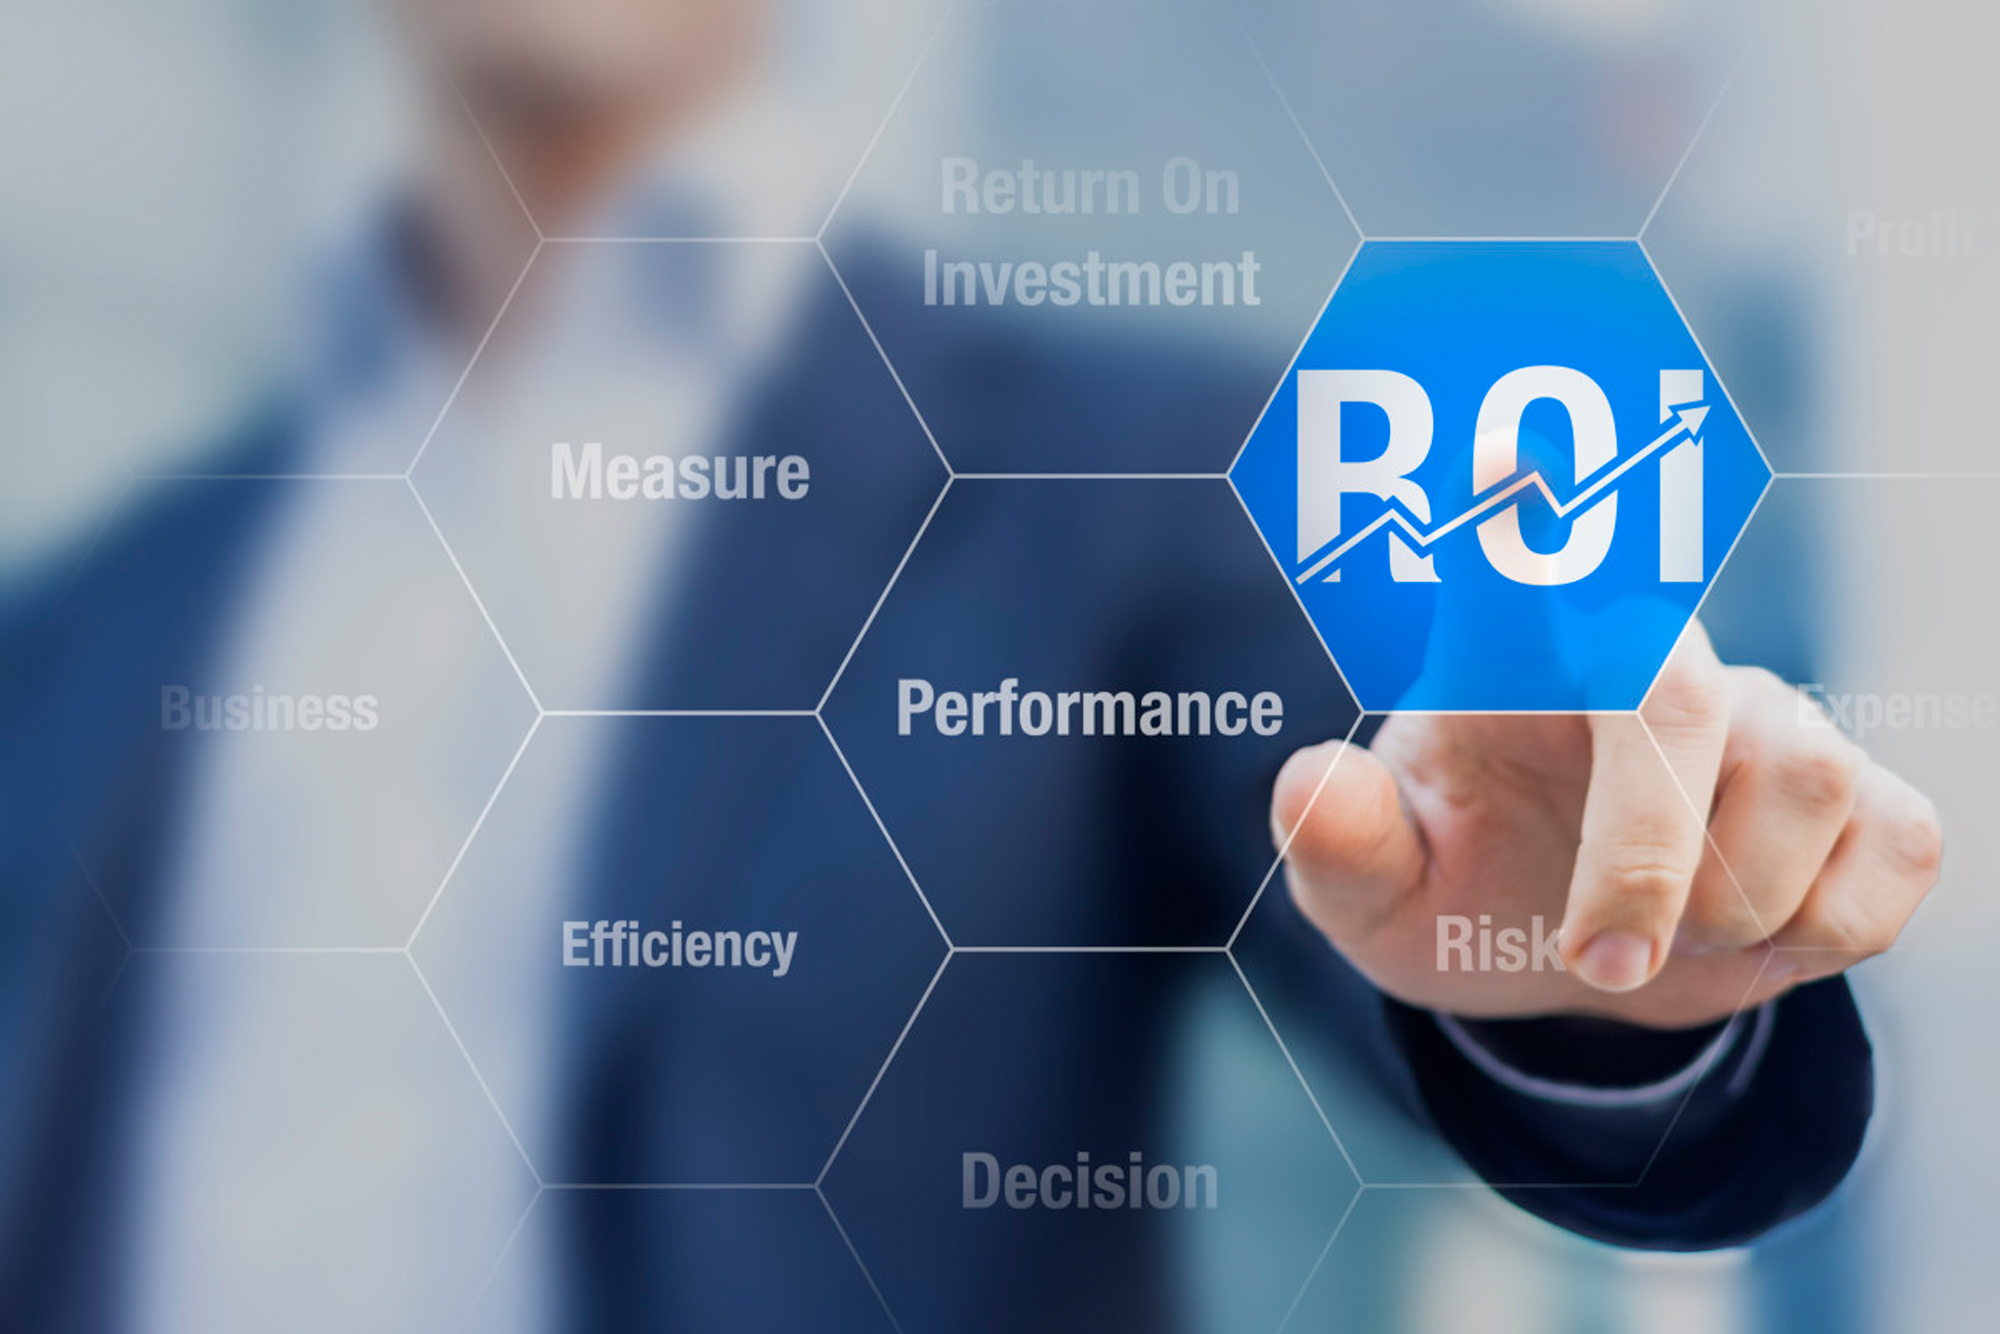 Aligning your business resources for success